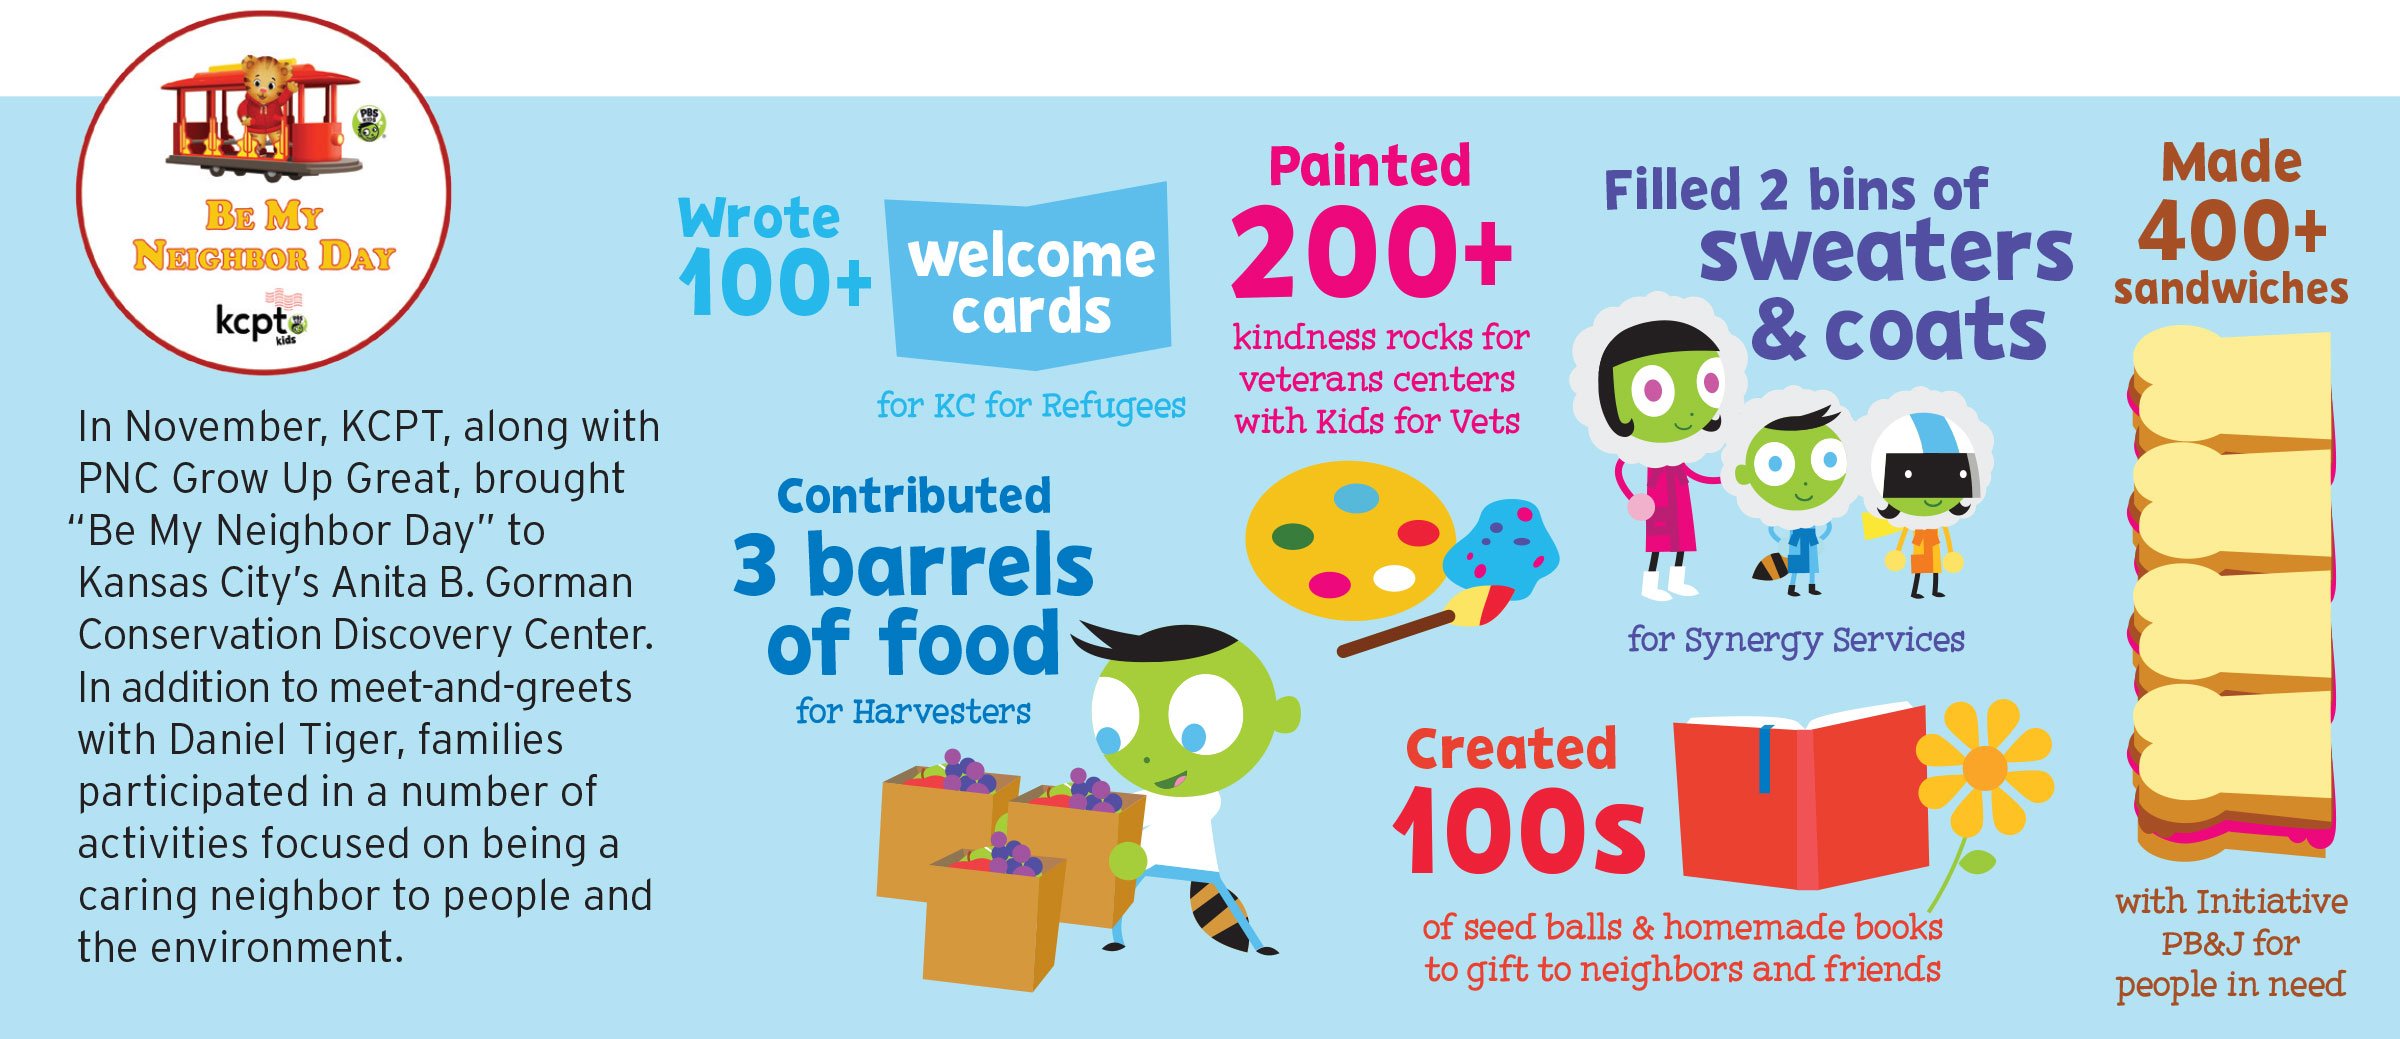 KCPT KIDS Sesame Street in Communities Be My Neighbor Day infographic